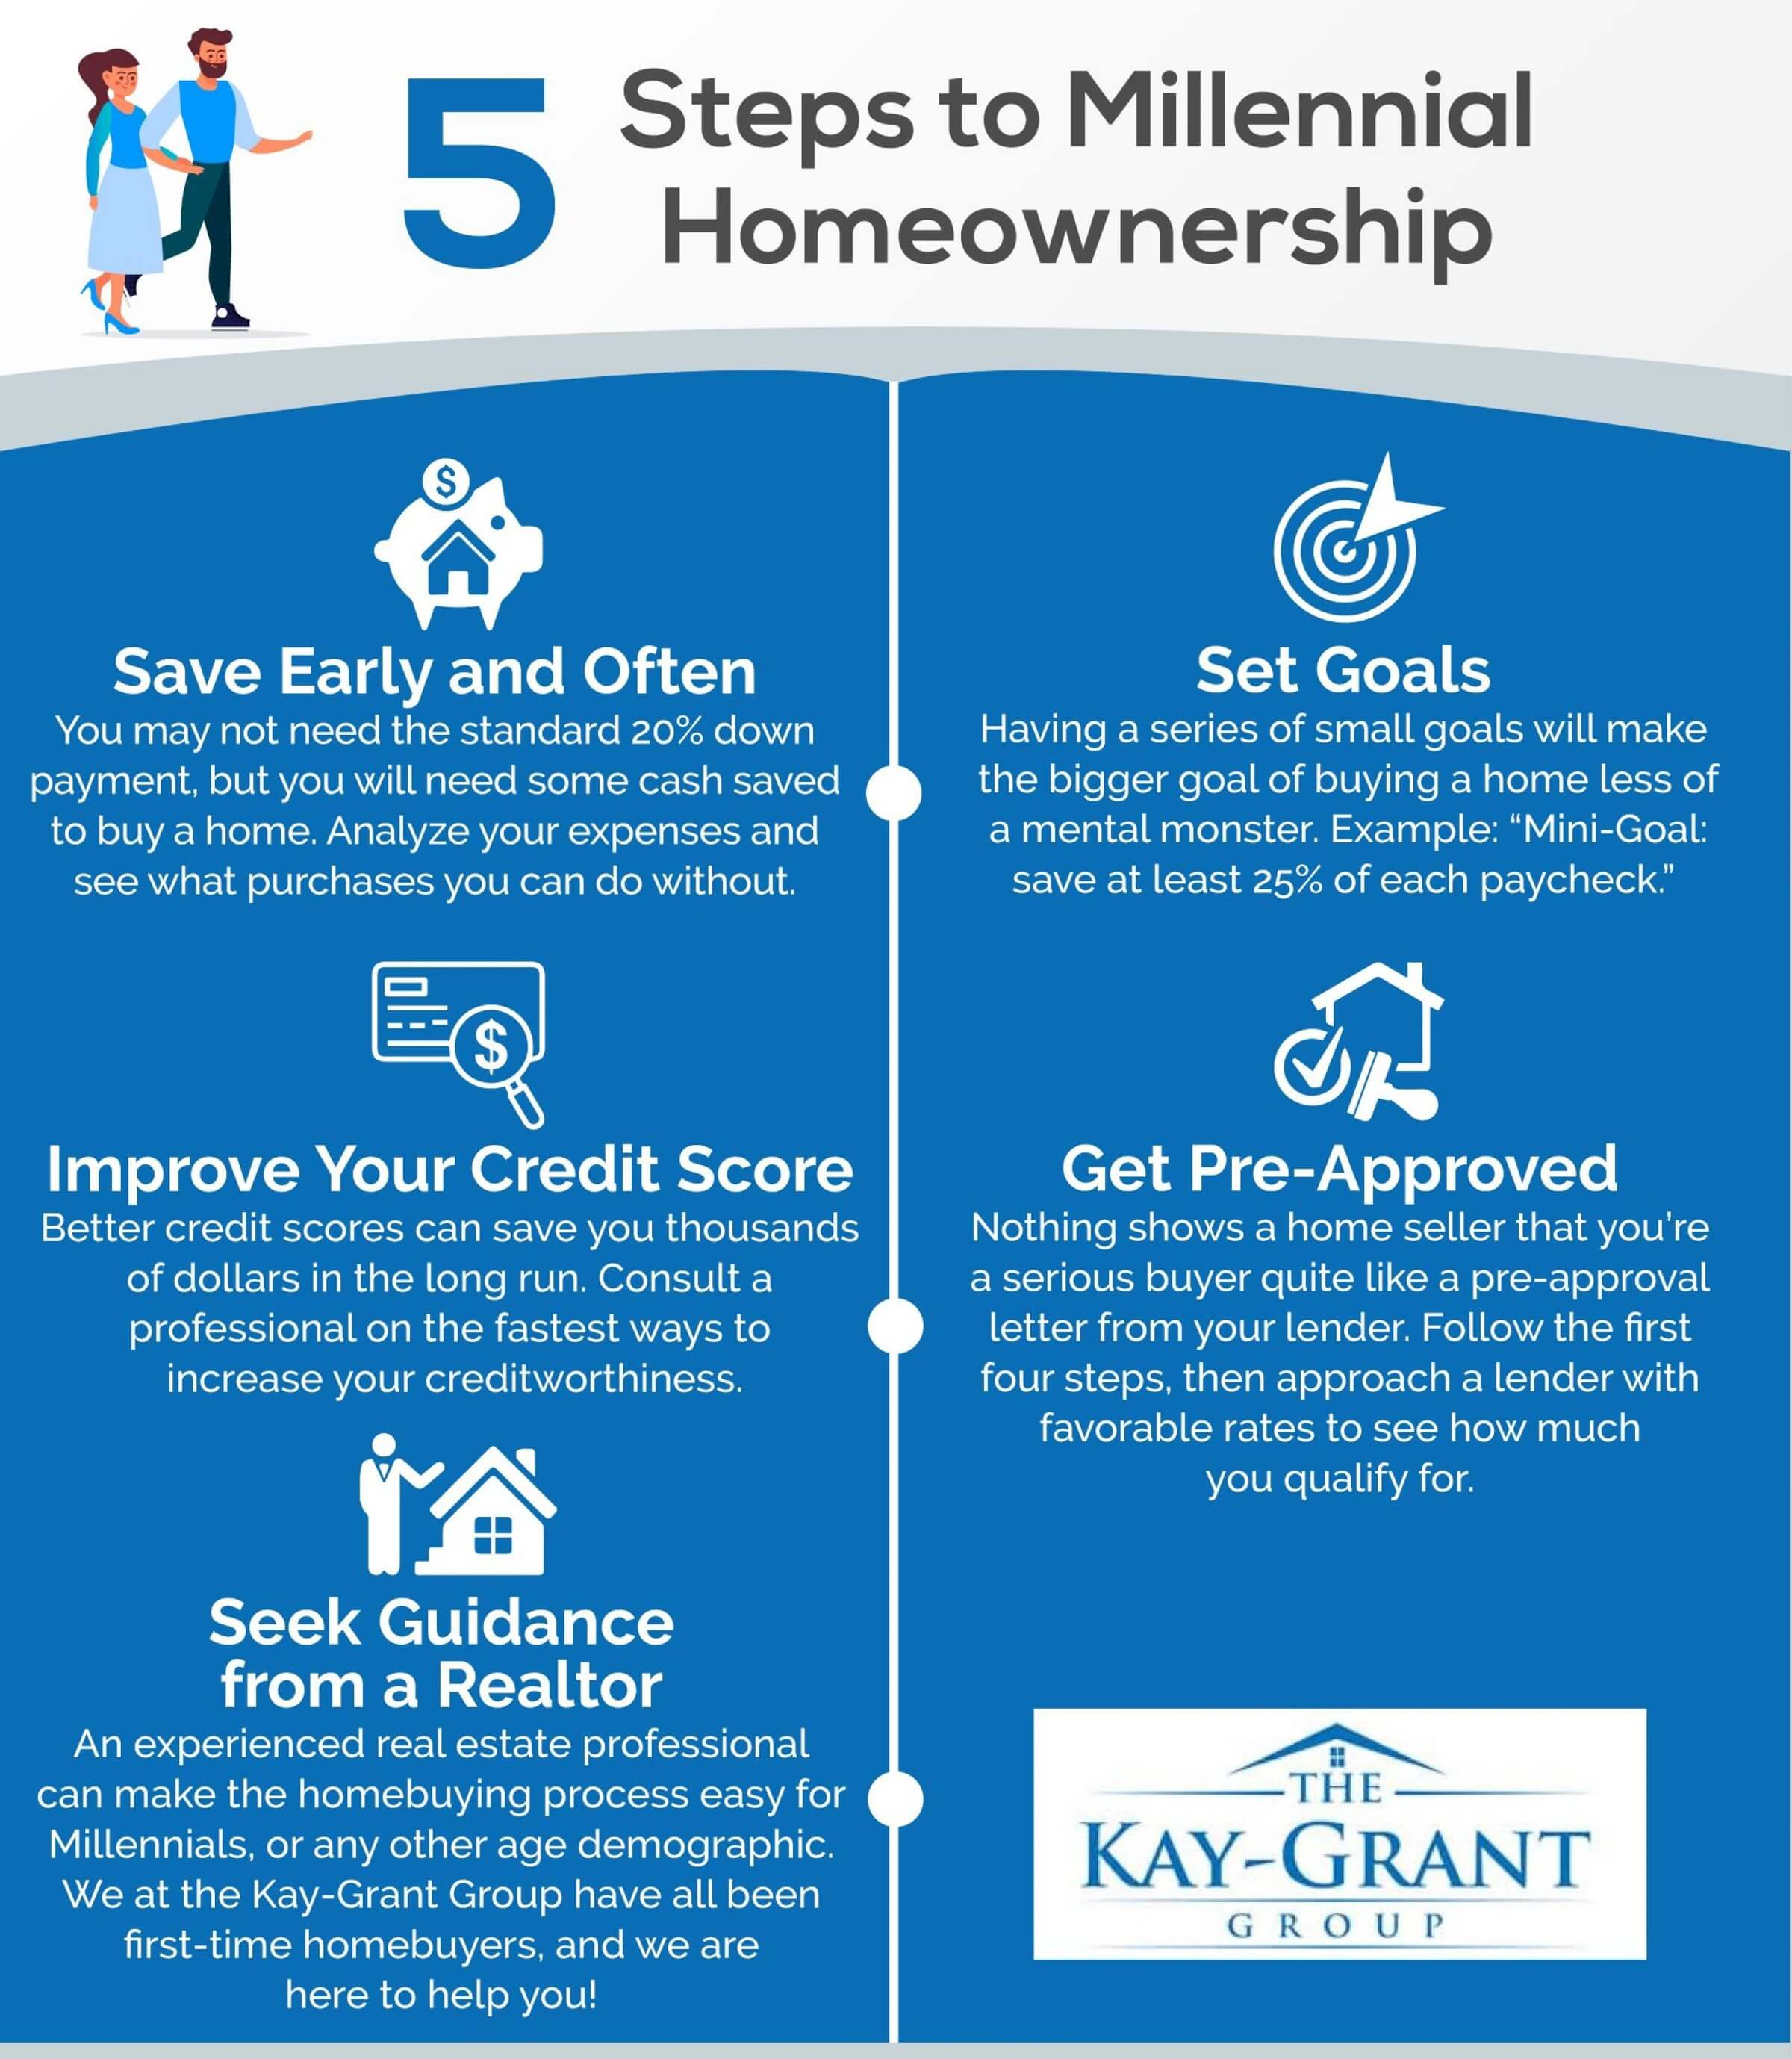 Steps to Millennial Homeownership